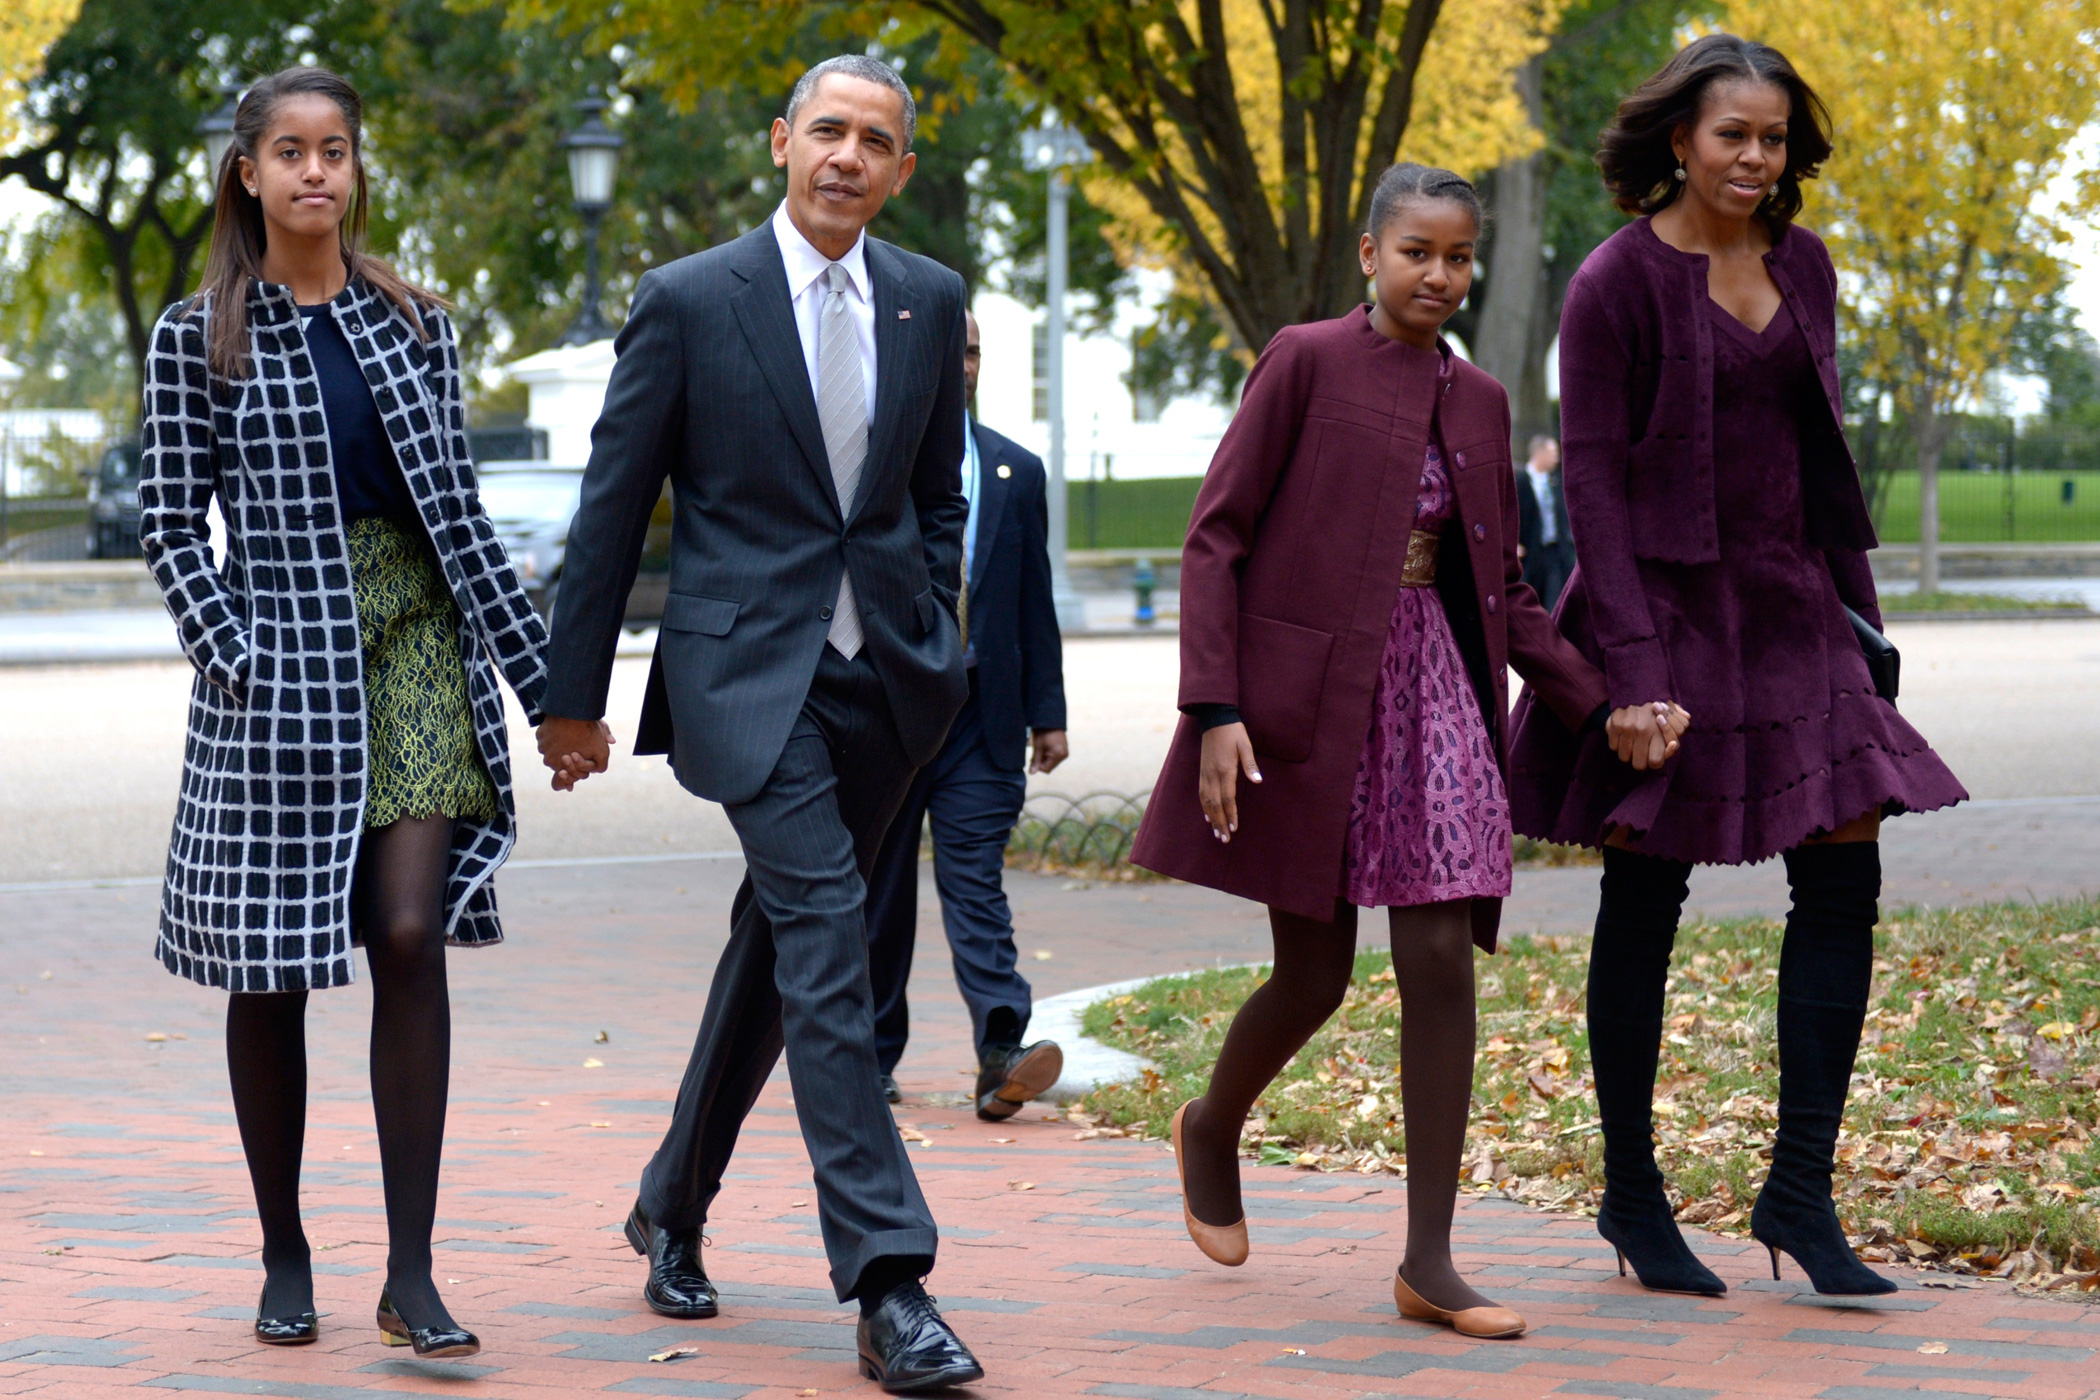 Oct. 27, 2013                               President Barack Obama walks with his wife Michelle Obama and daughters Malia Obama  and Sasha Obama through Lafayette Park to St John's Church to attend service in Washington.